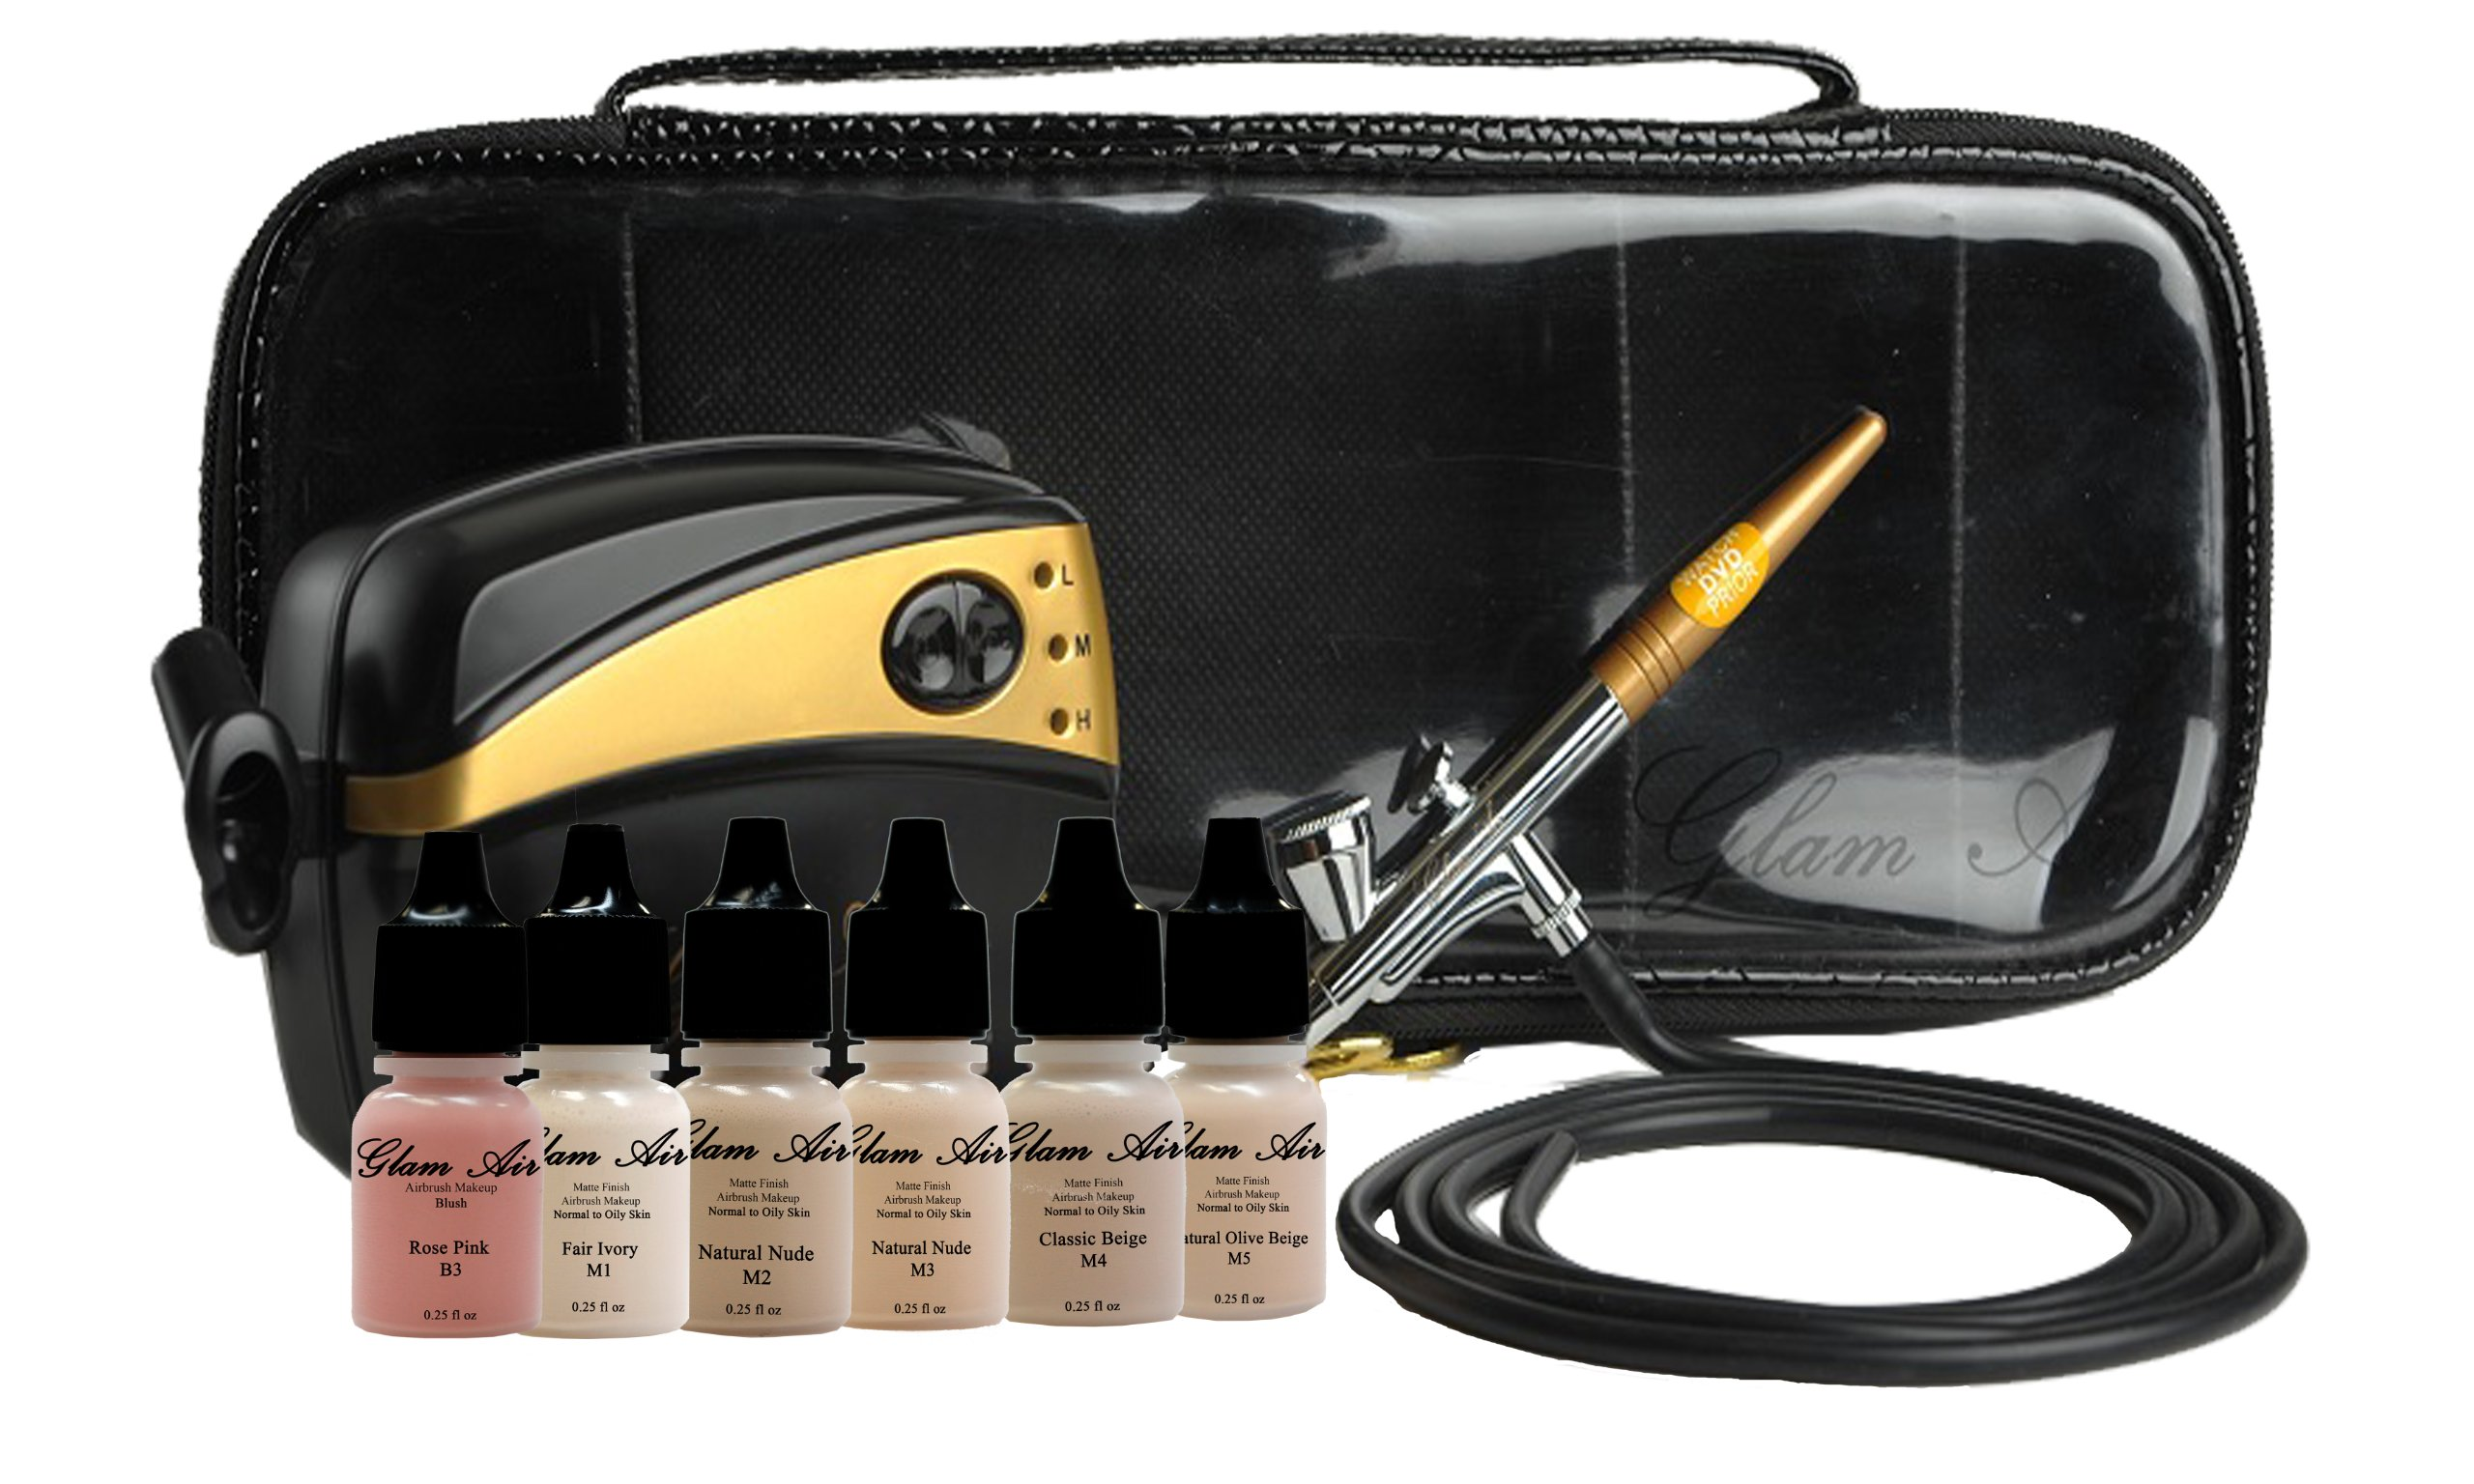 Glam Air Airbrush Makeup Machine System with 5 Dark Matte Shades of Foundation and Airbrush Blush light